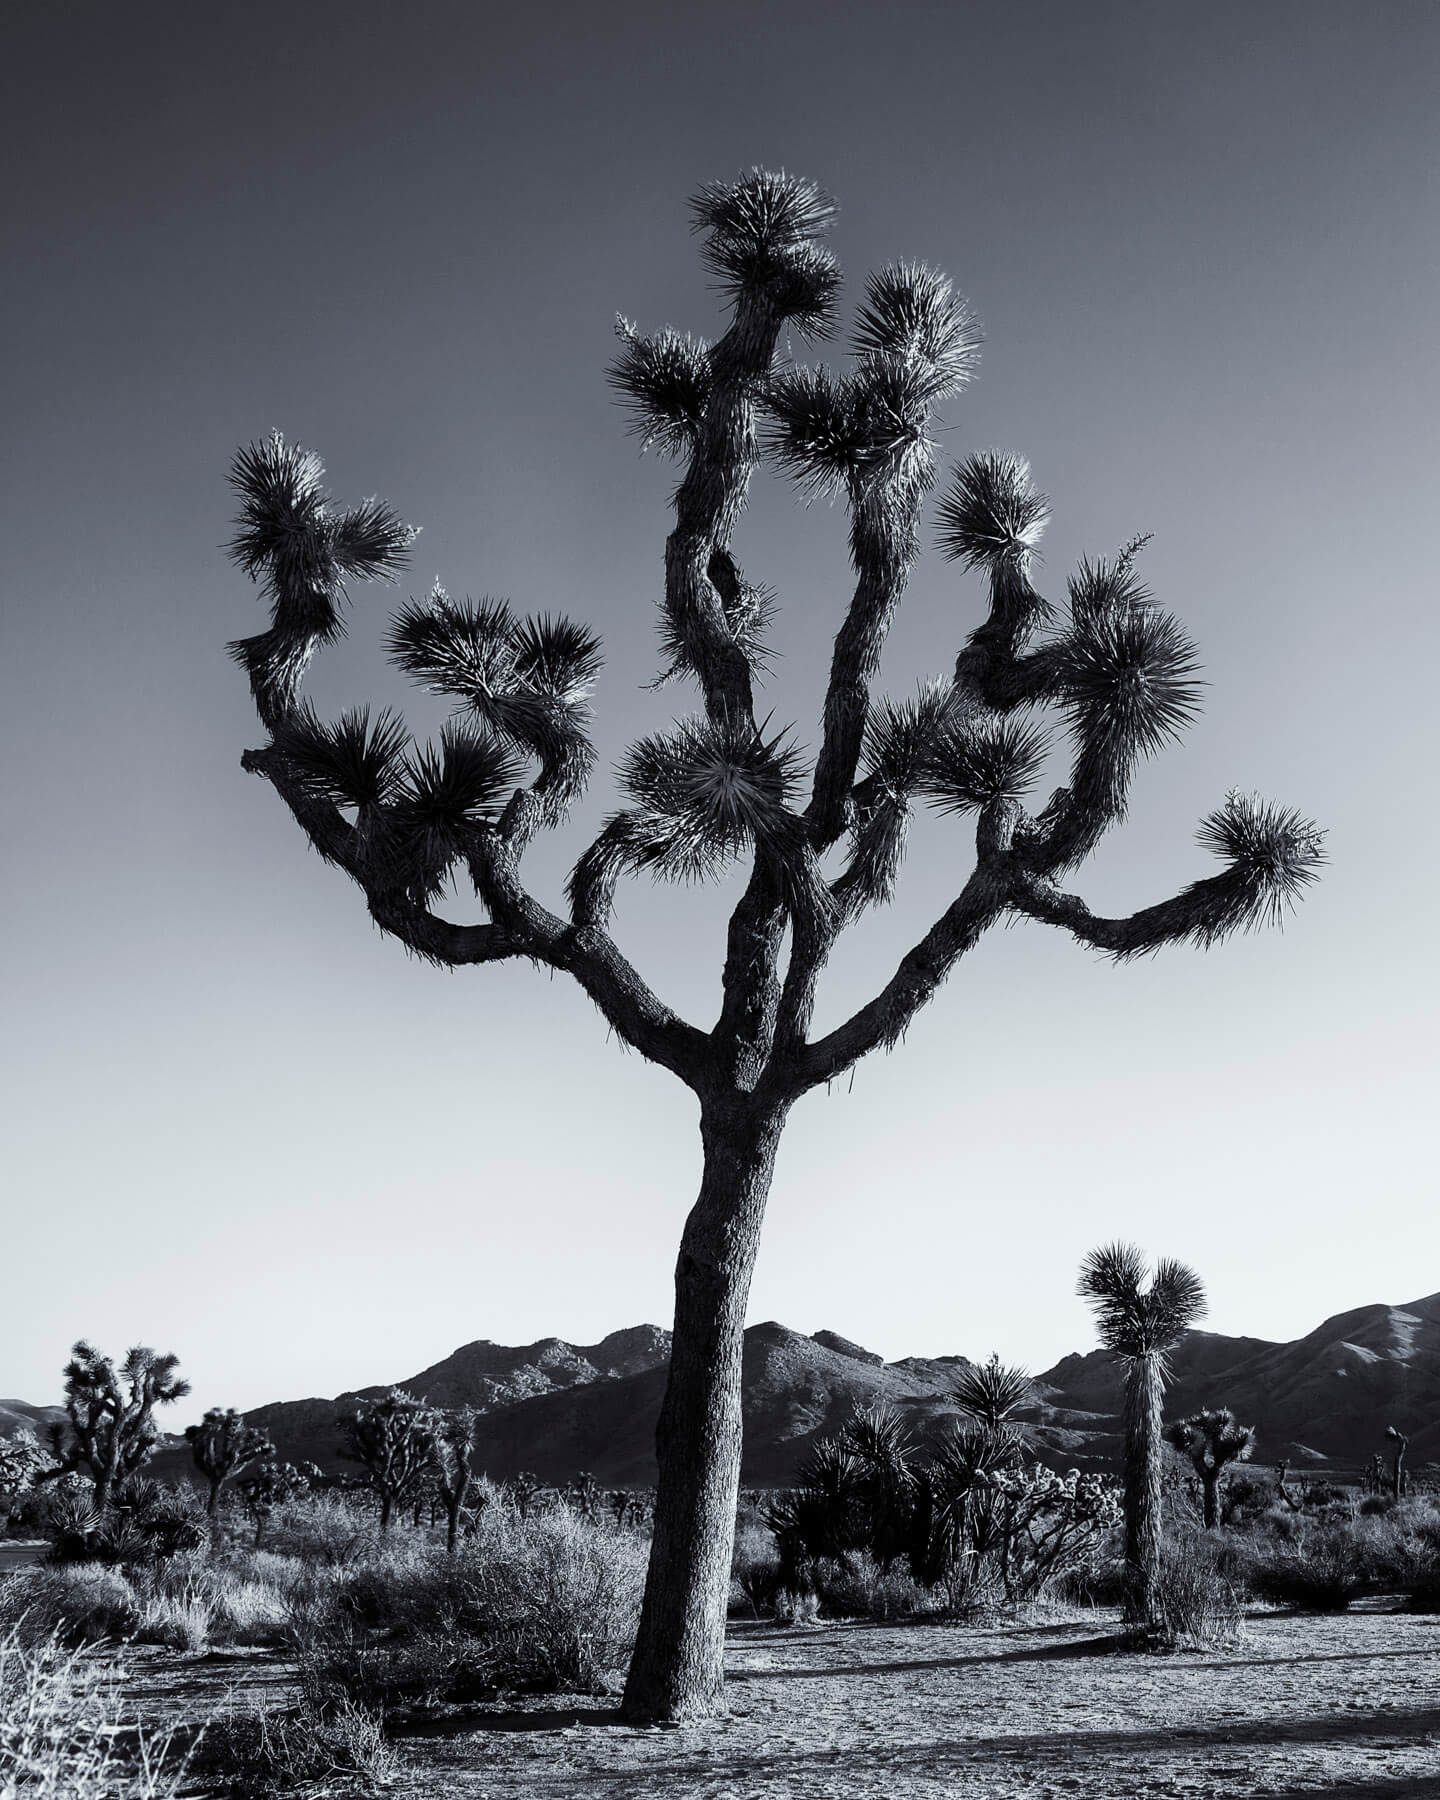 Joshua Tree National Park, December 2013